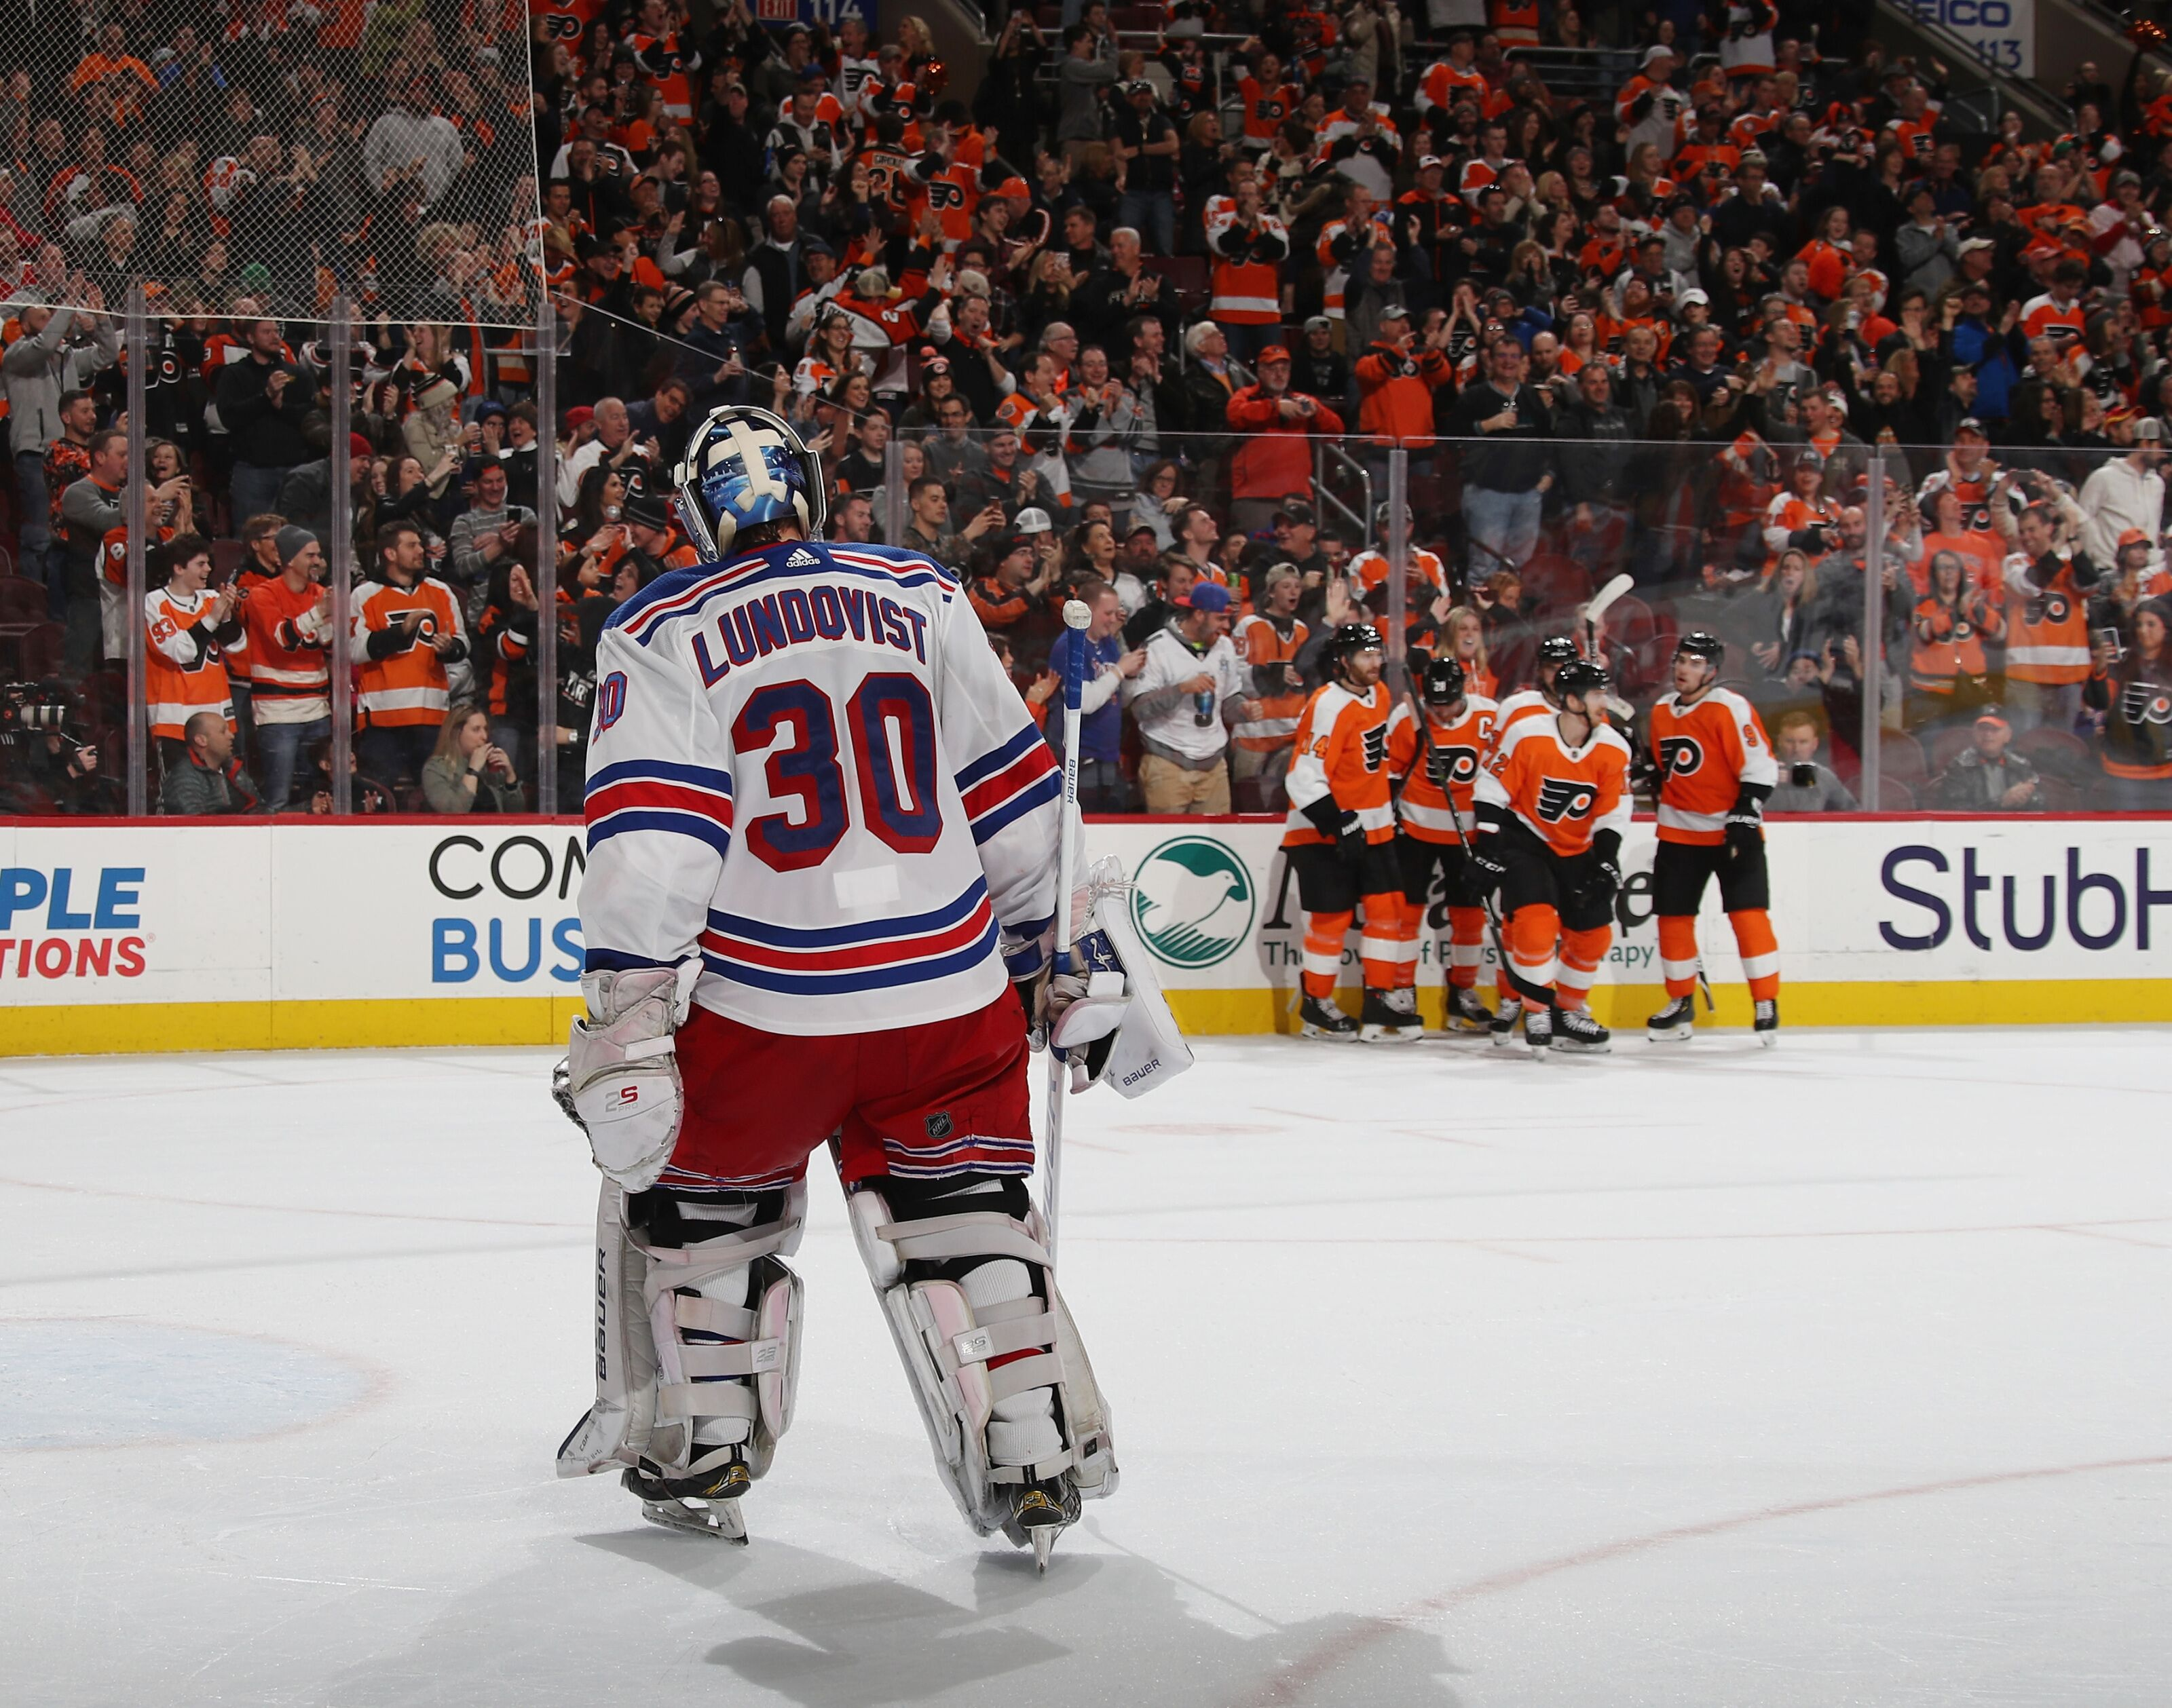 943122252-new-york-rangers-v-philadelphia-flyers.jpg